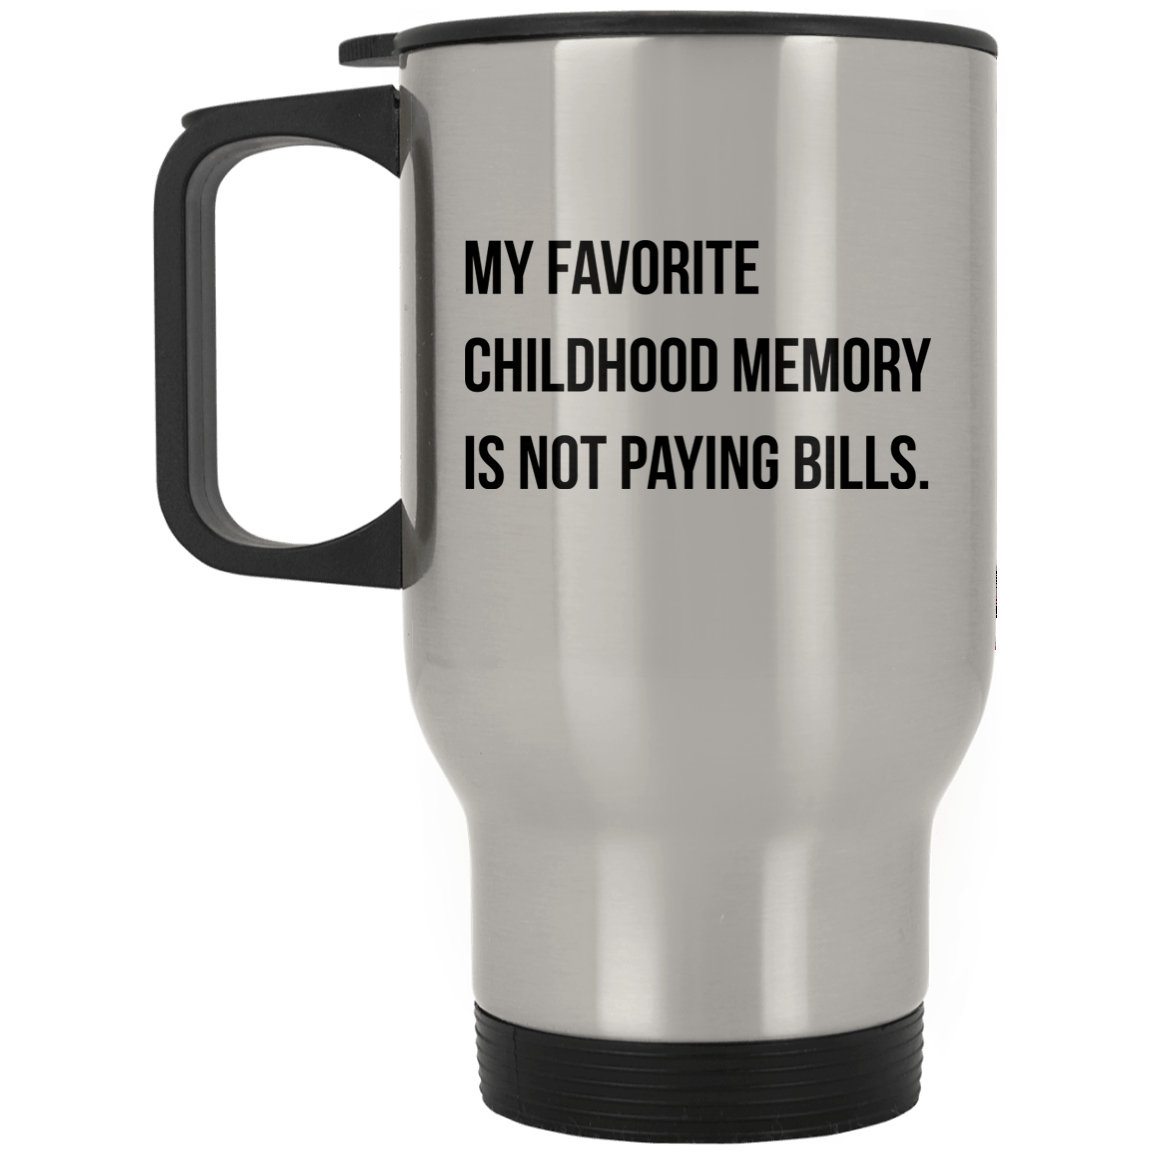 essay about my favorite childhood memory My favorite childhood memory essay - get to know main tips as to how to receive the greatest term paper ever get an a+ grade even for the hardest assignments entrust.